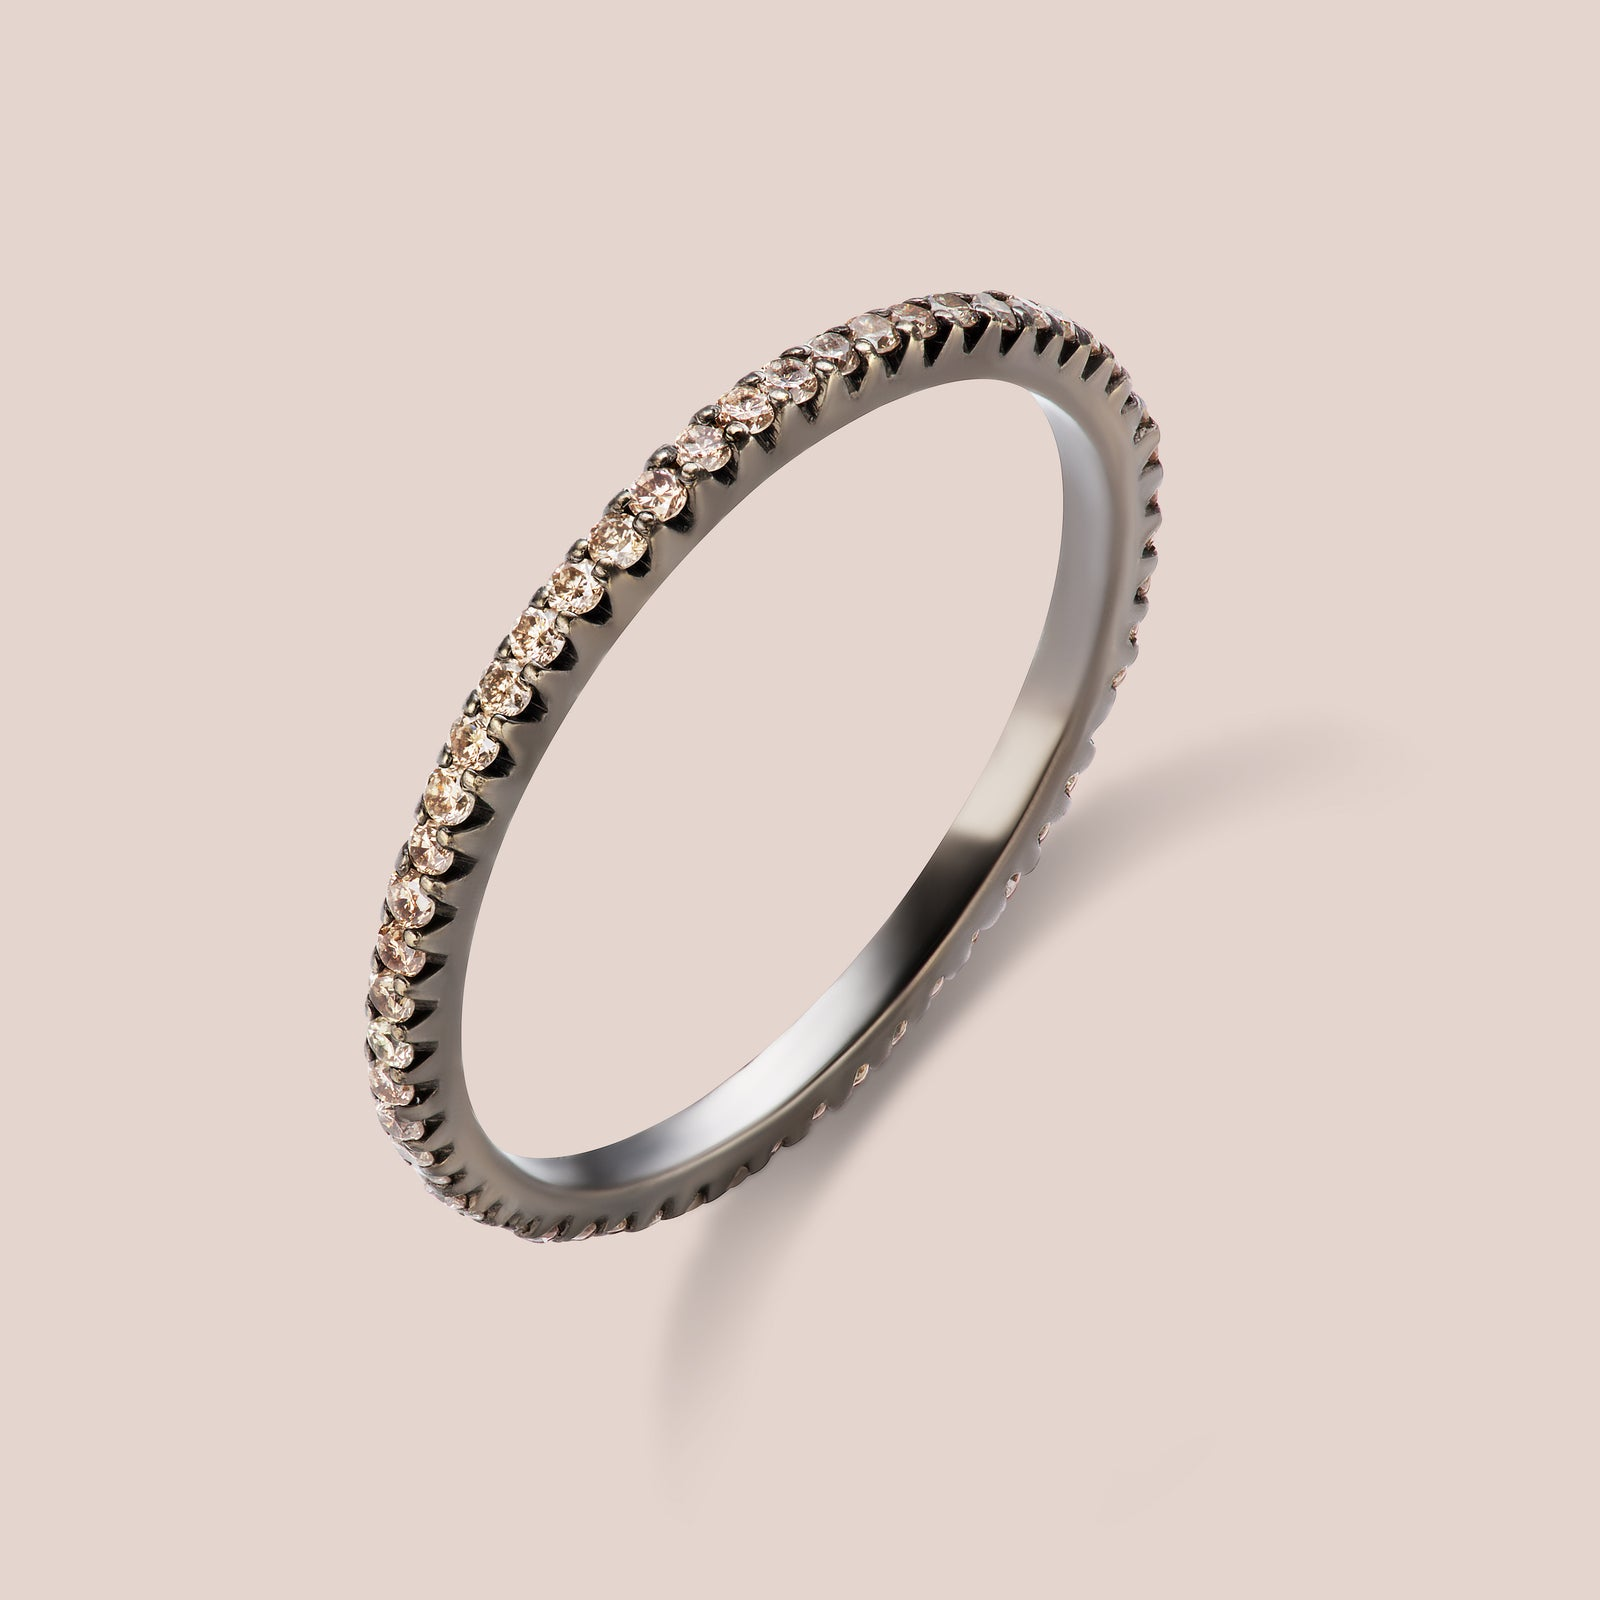 """Rothko"" Champagne Diamond Eternity Band 1.0mm Width"